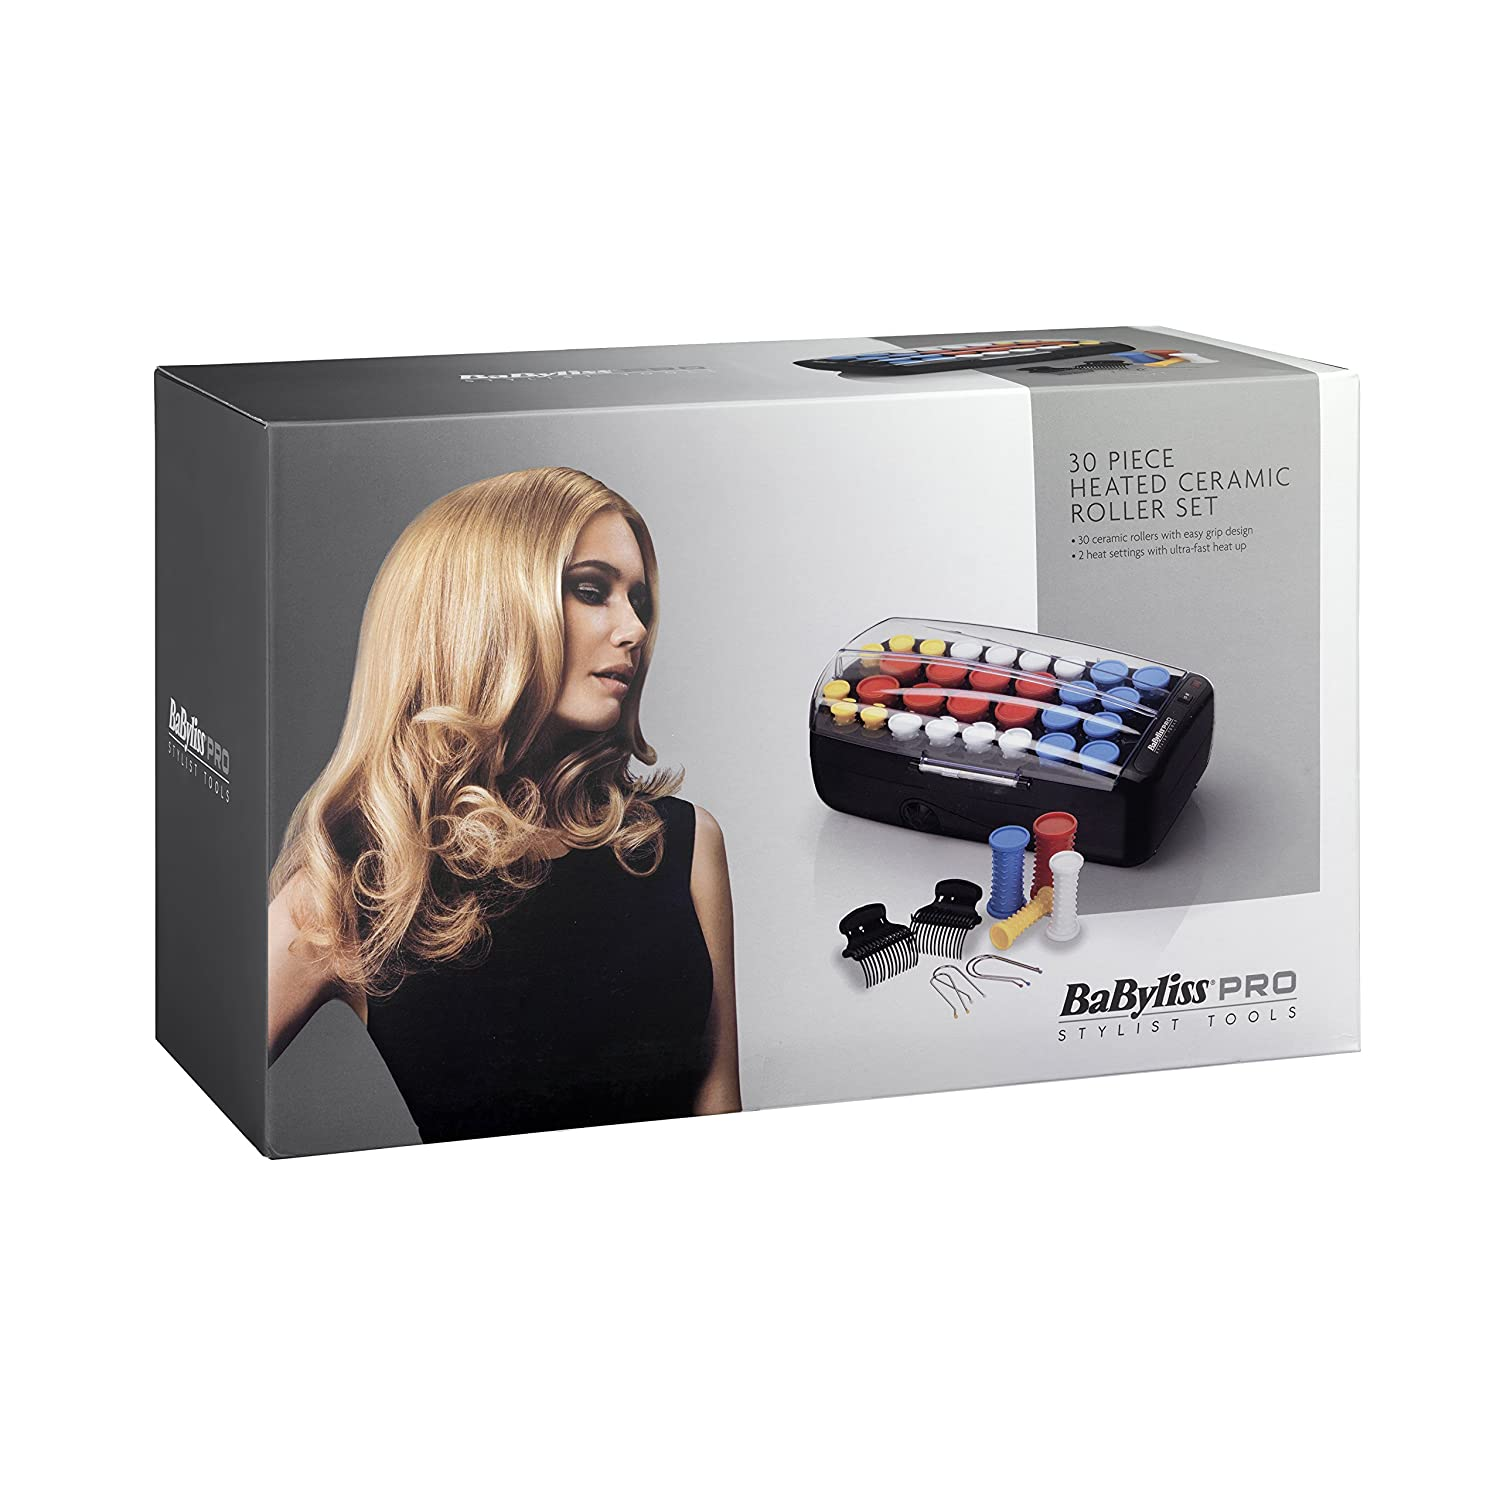 BaByliss Pro Heated Ceramic Roller Set - Pack of 30 Pieces BAB3031BU